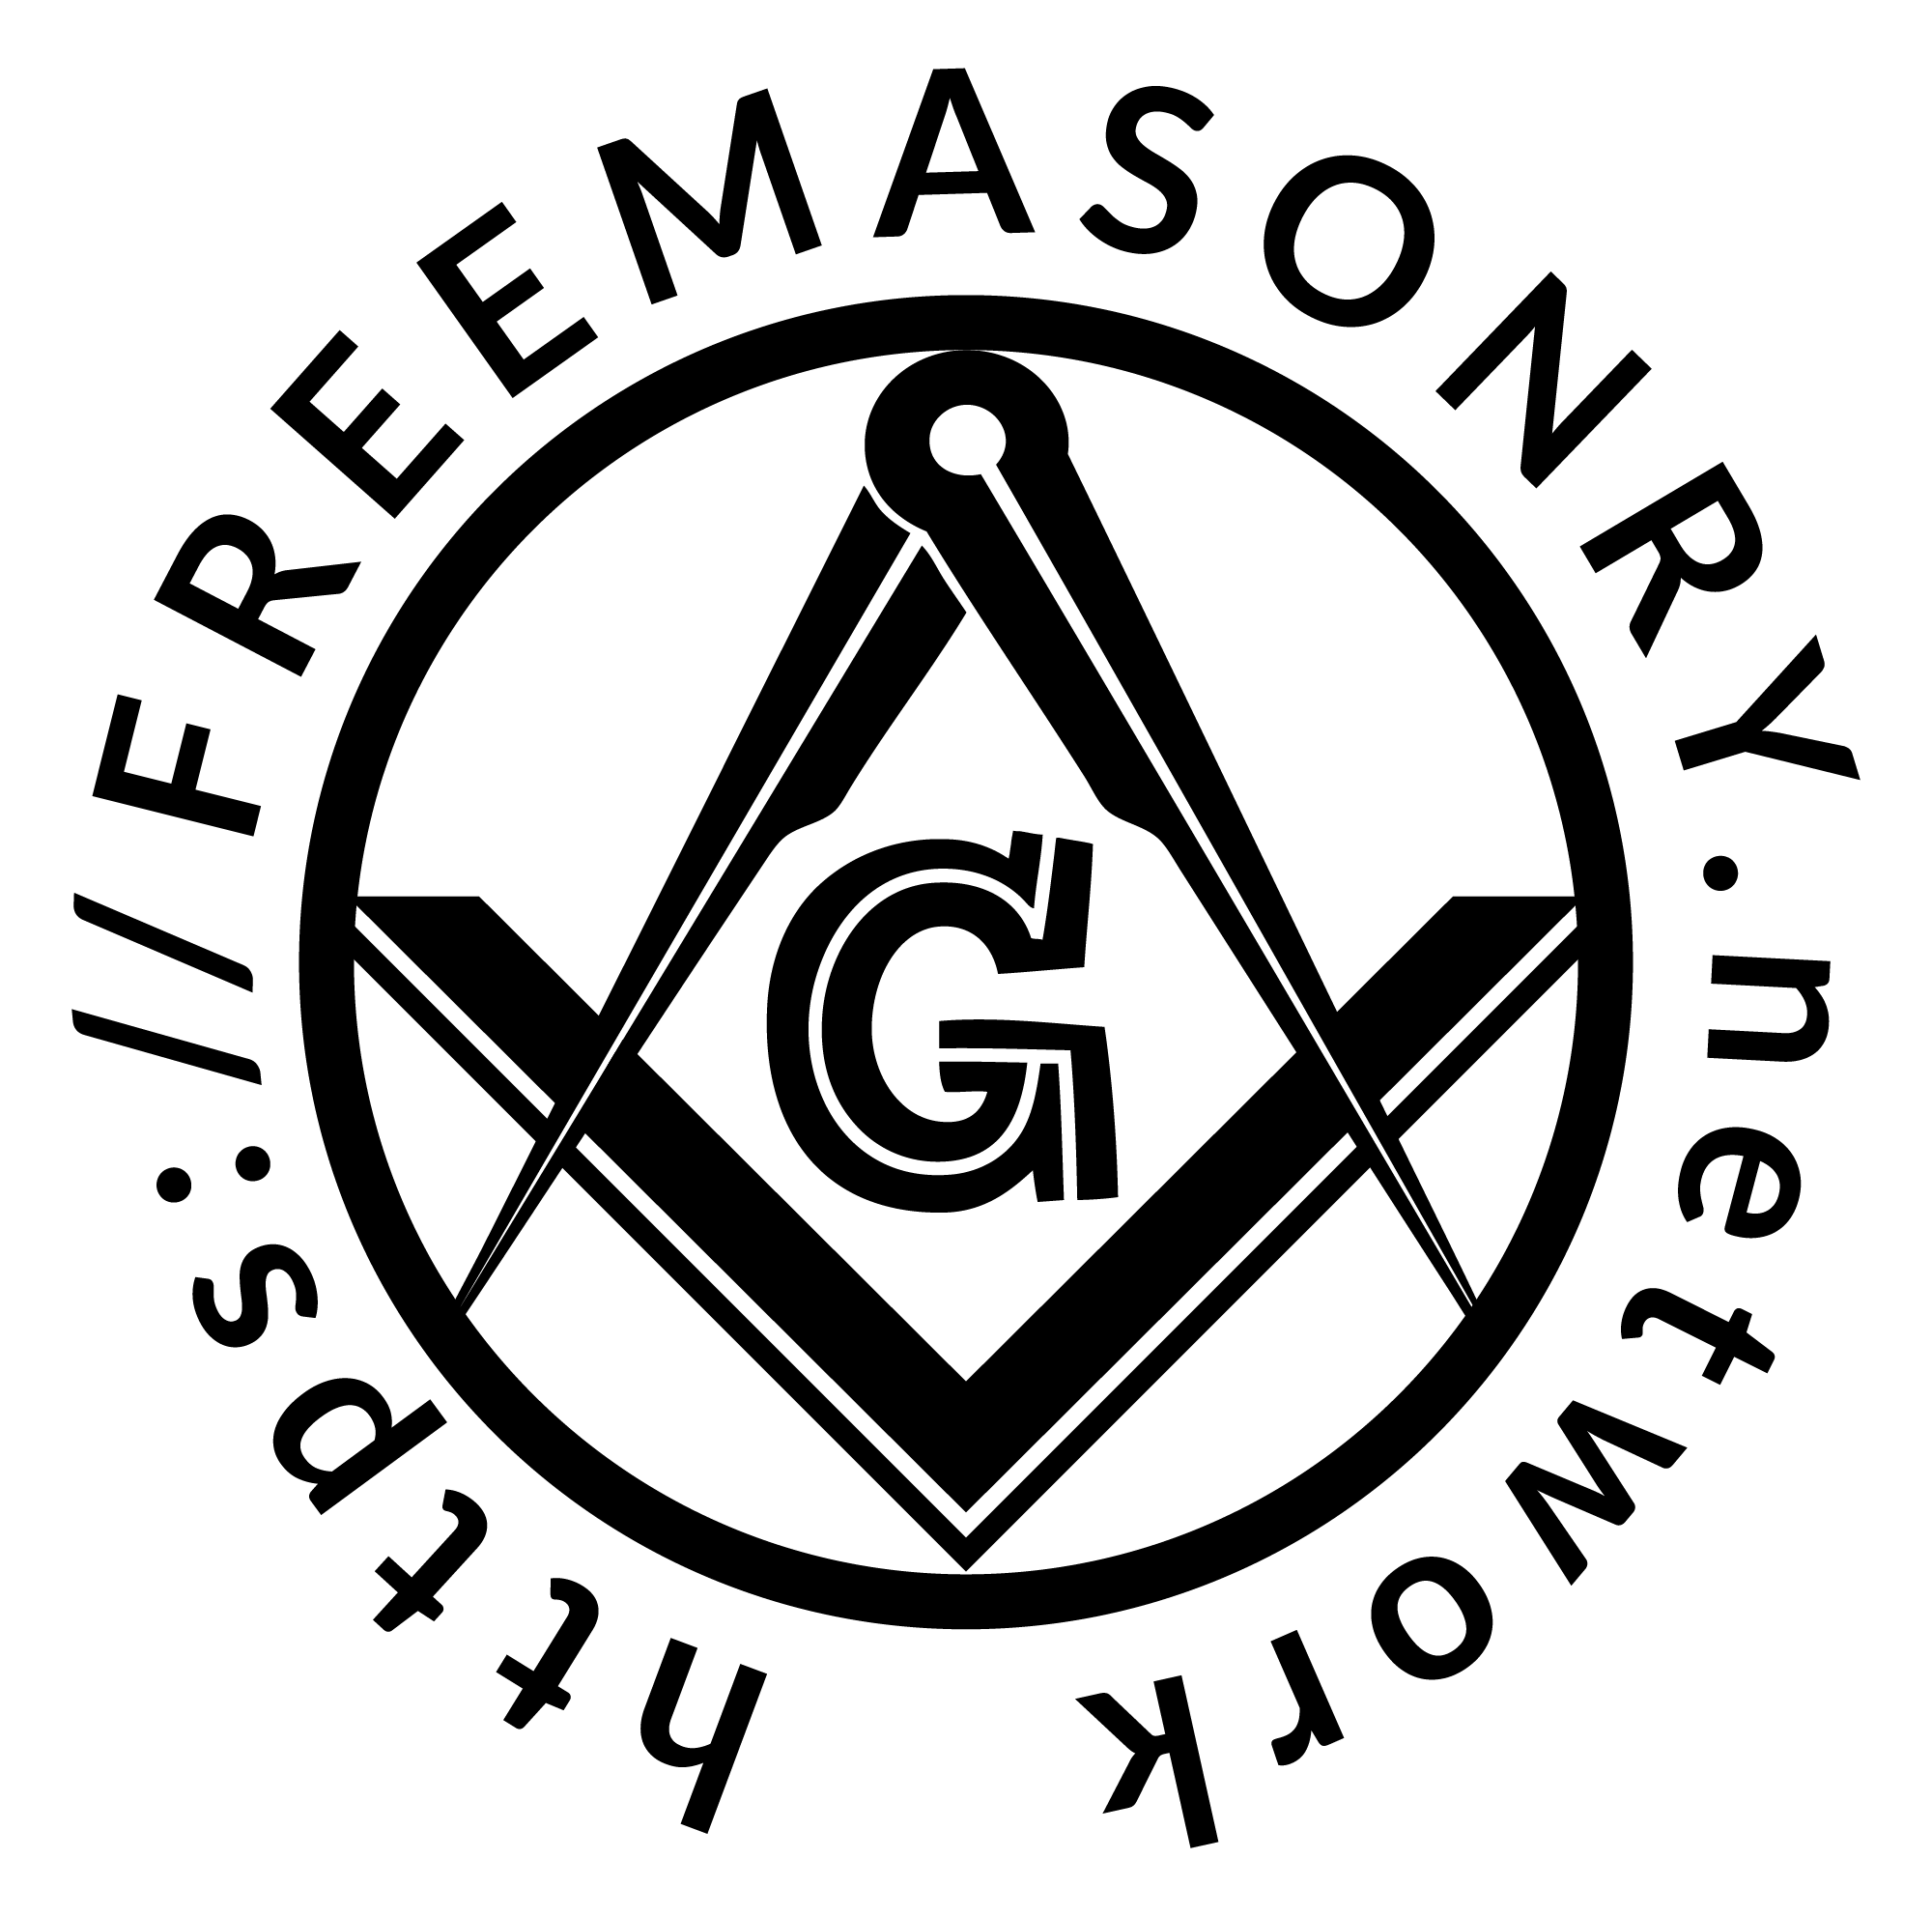 UNDERSTAND MASONIC RITUALS AND SYMBOLS